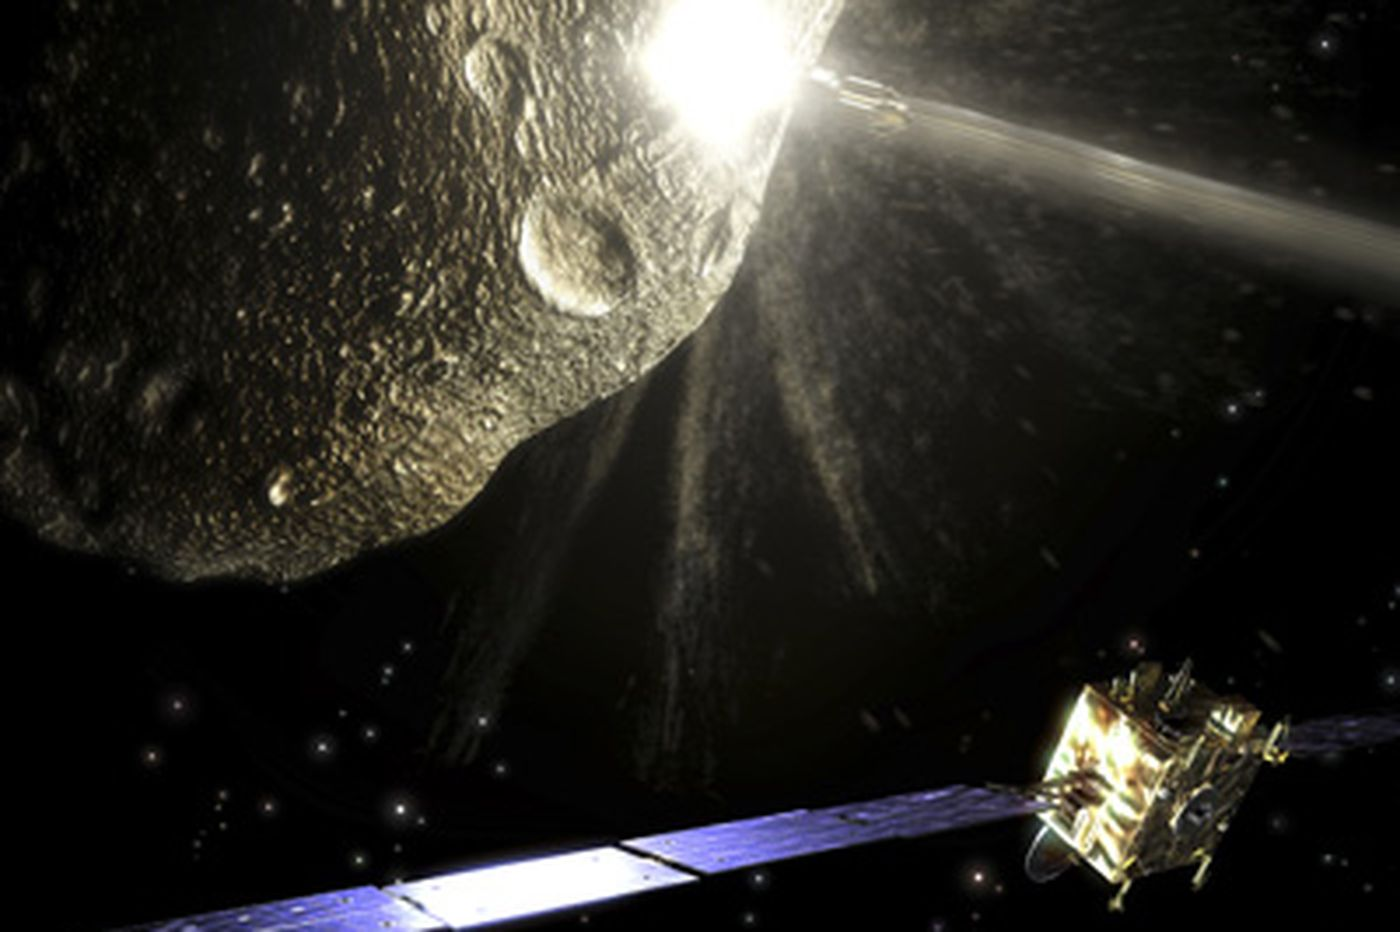 Russia seeks to thwart asteroid that may hit Earth - or not